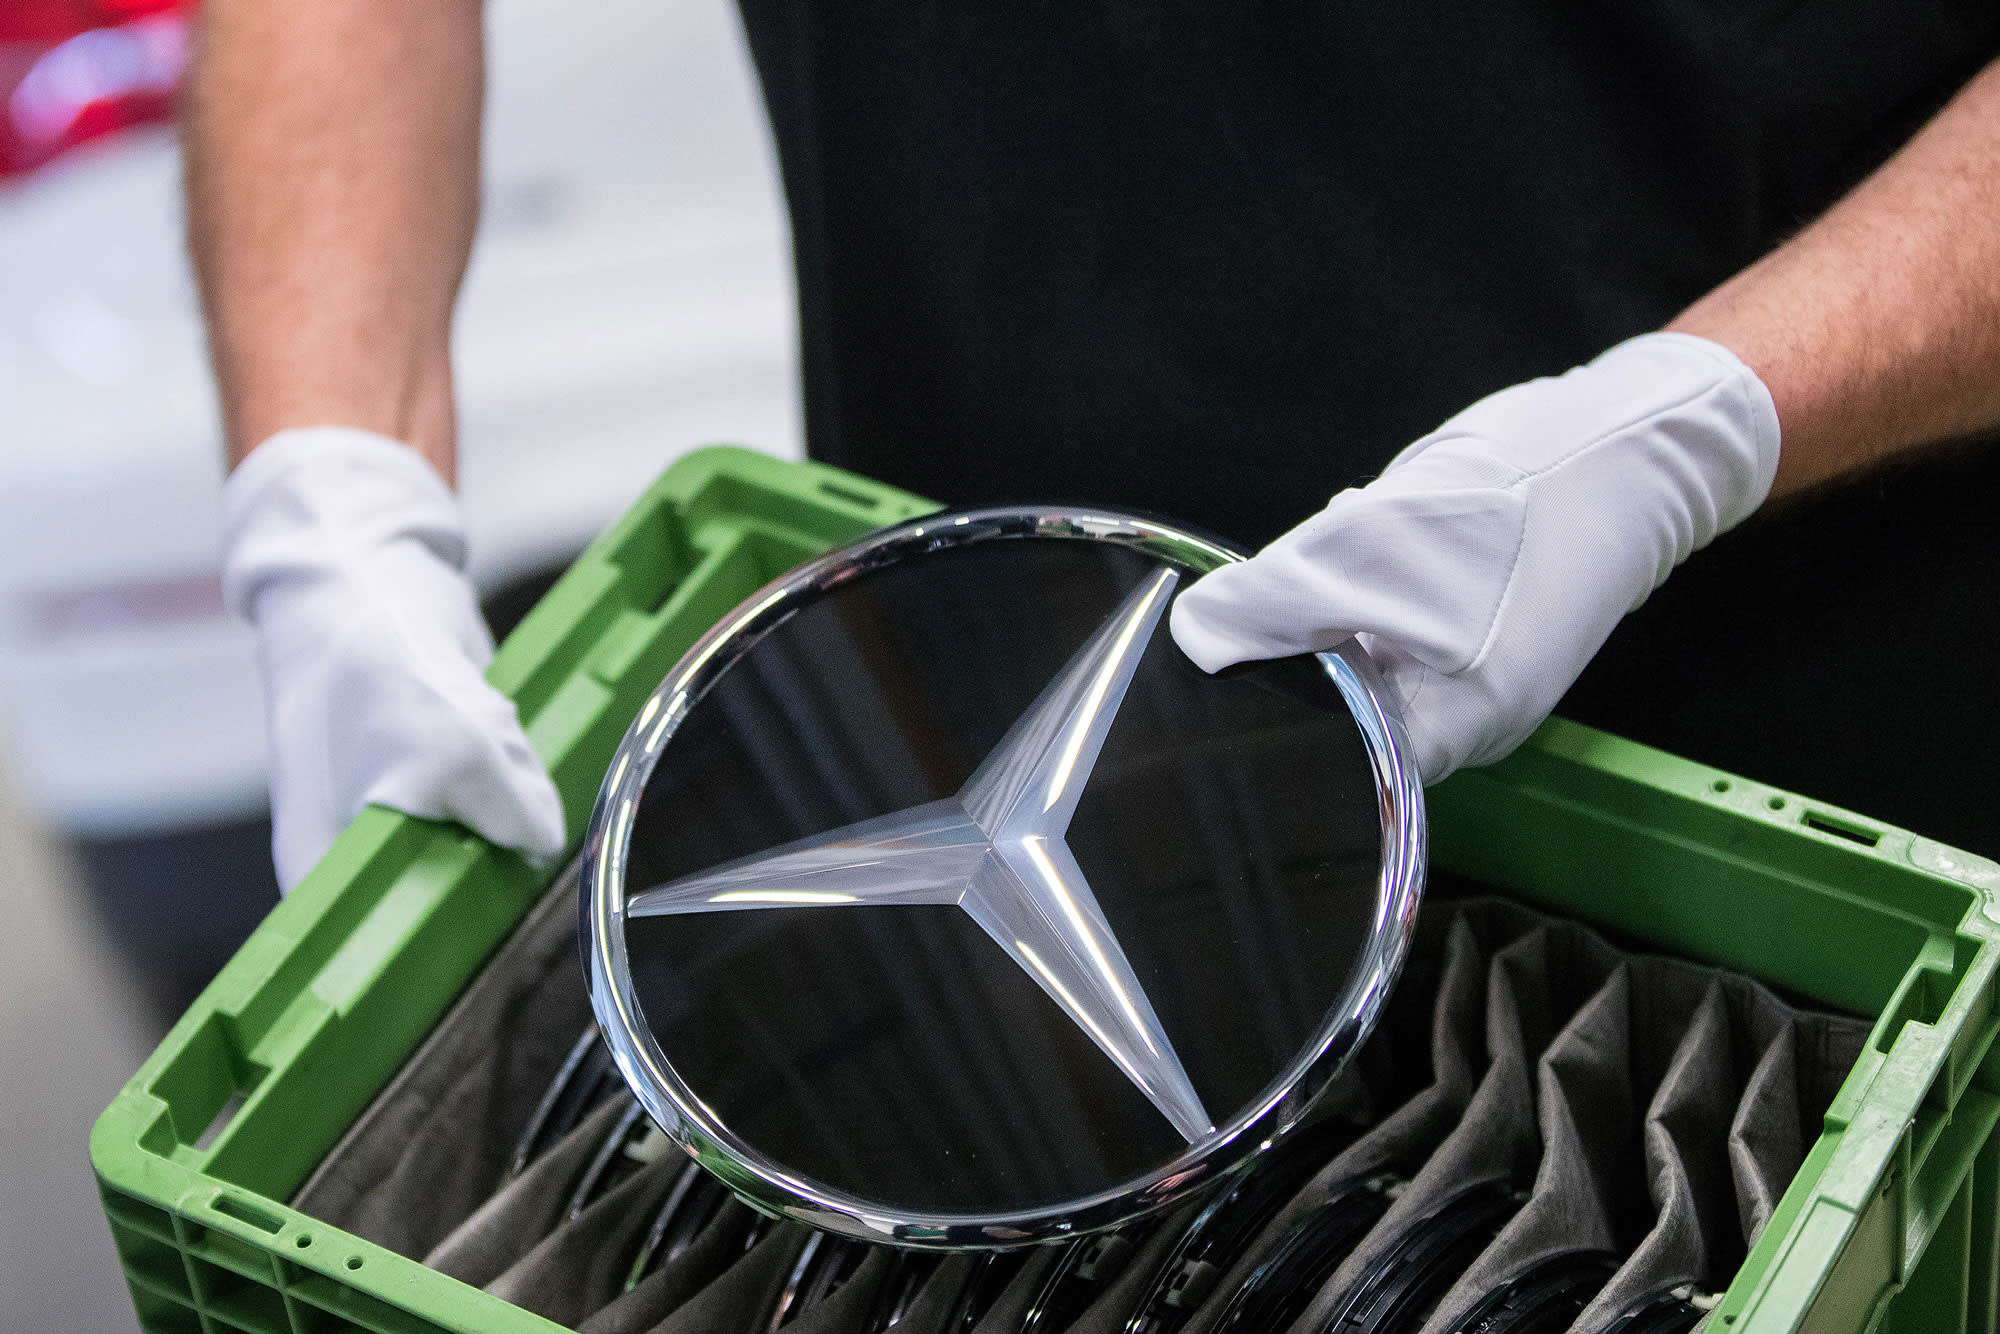 China's Geely buys a $9 billion stake in Daimler, reports